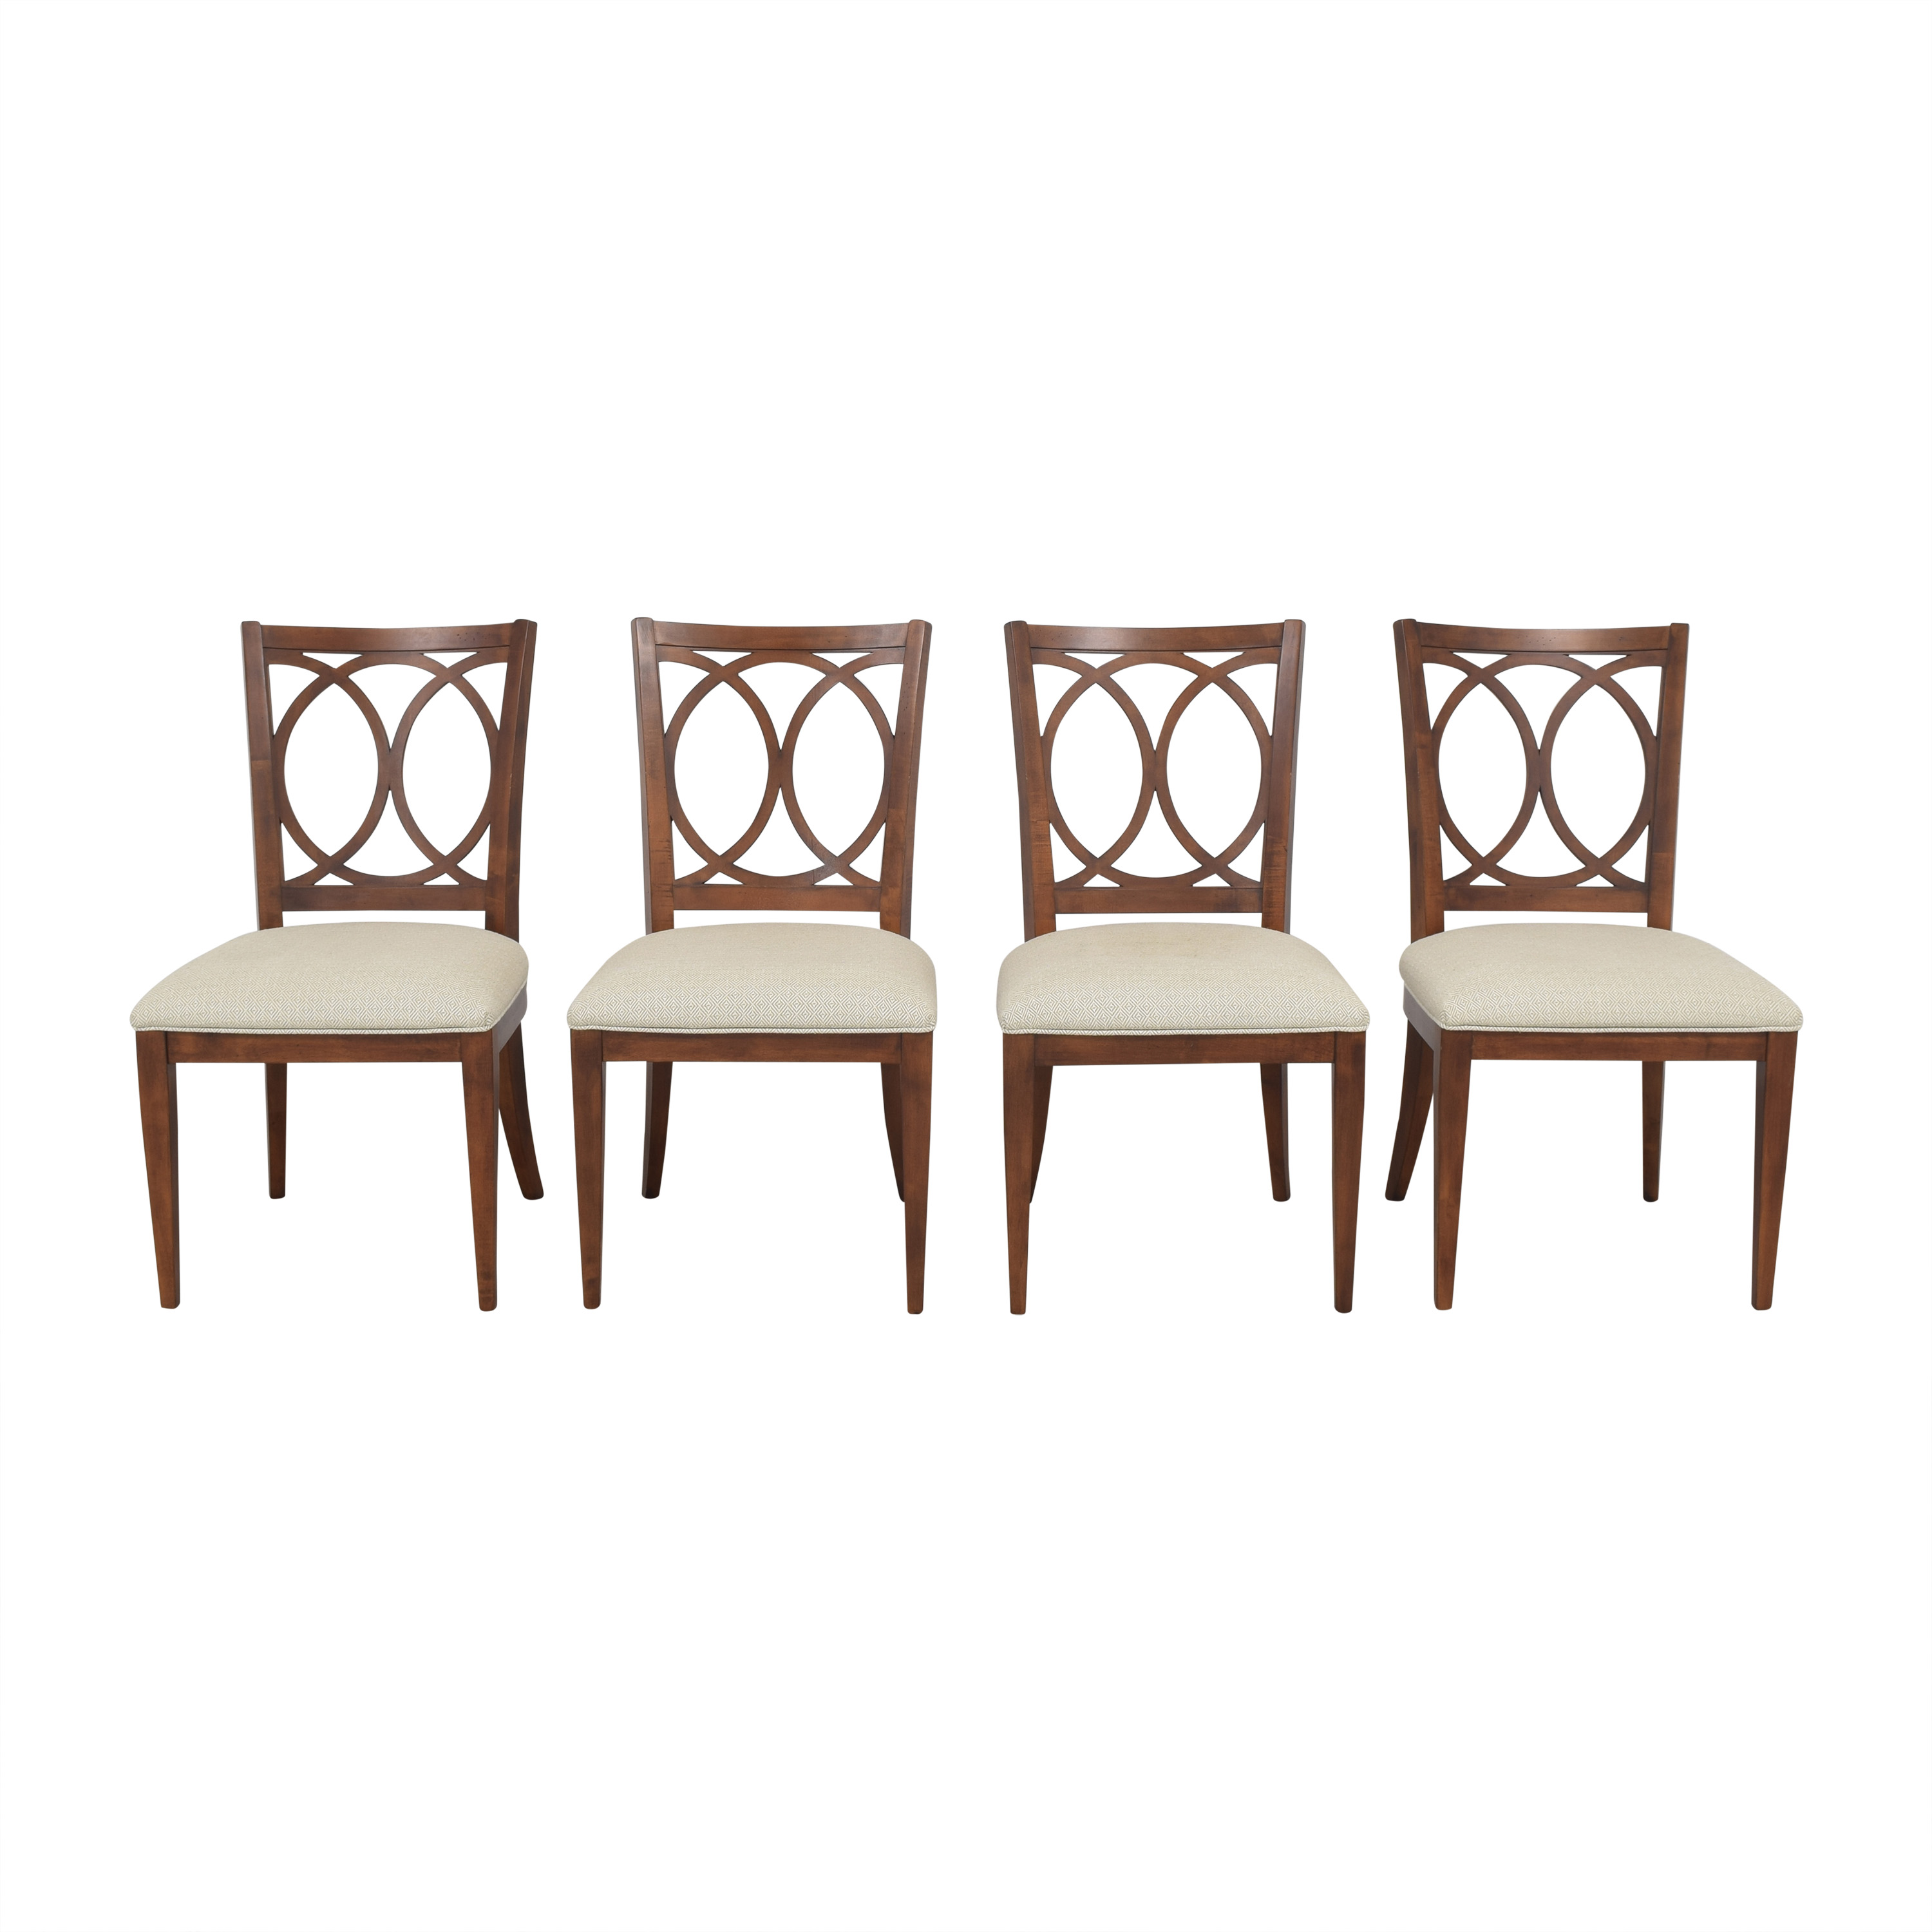 Ethan Allen Cyra Side Dining Chairs / Chairs